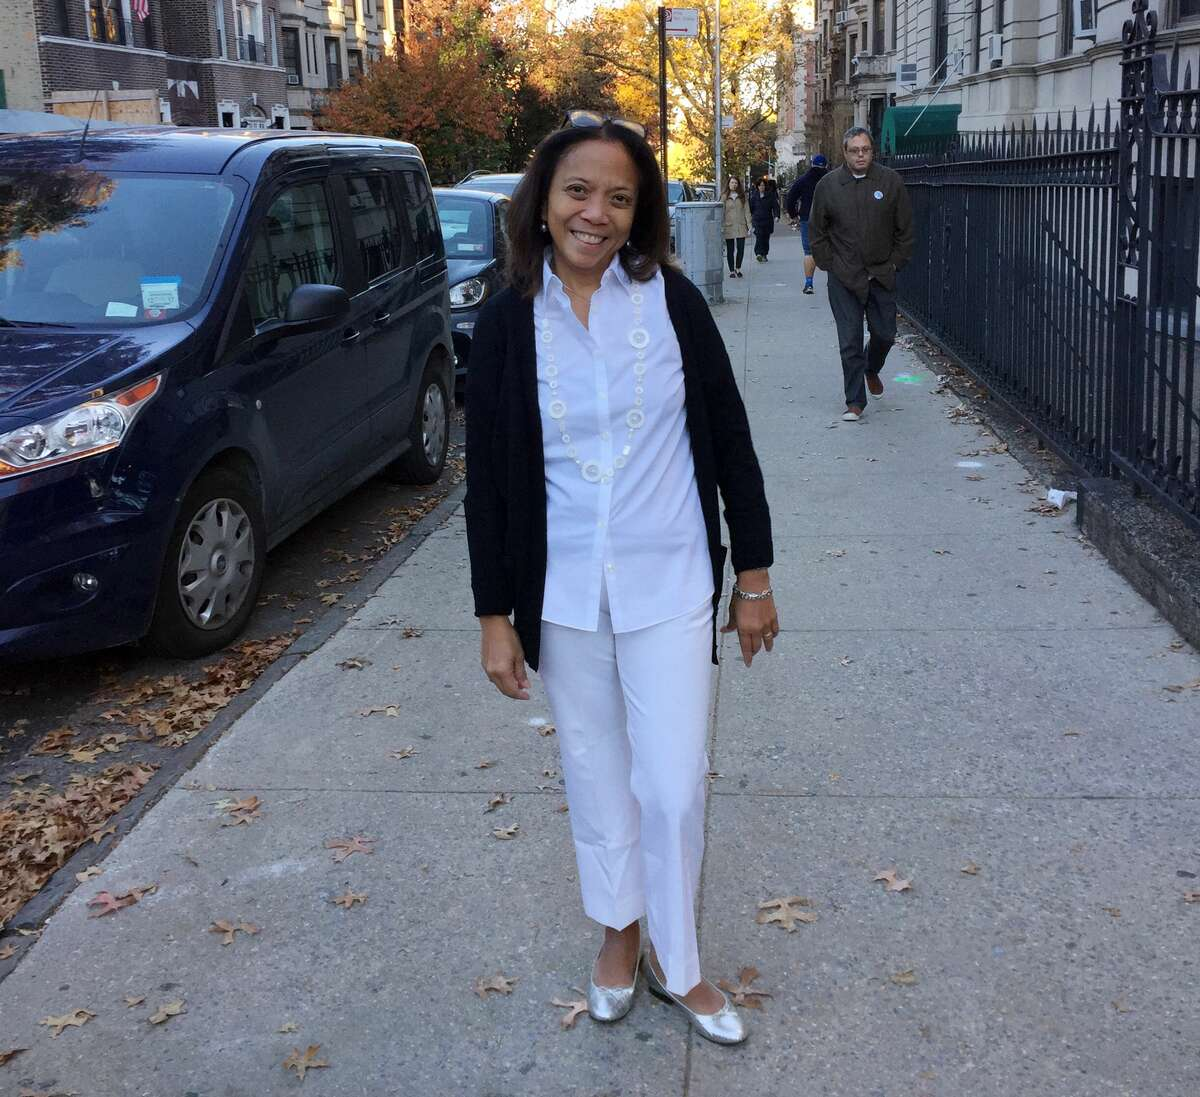 Sophia Romero of Brooklyn, N.Y., poses dressed in white Tuesday, Nov. 8, 2016, near her polling place after voting for Hillary Clinton. Some of Clinton's supporters dressed in white as a tribute to the suffragists, who wore white in their fight to get women the right to vote in the early 1900s. Others wore pantsuits in a nod to Clinton's typical campaign uniform. (AP Photo/Beth J. Harpaz)